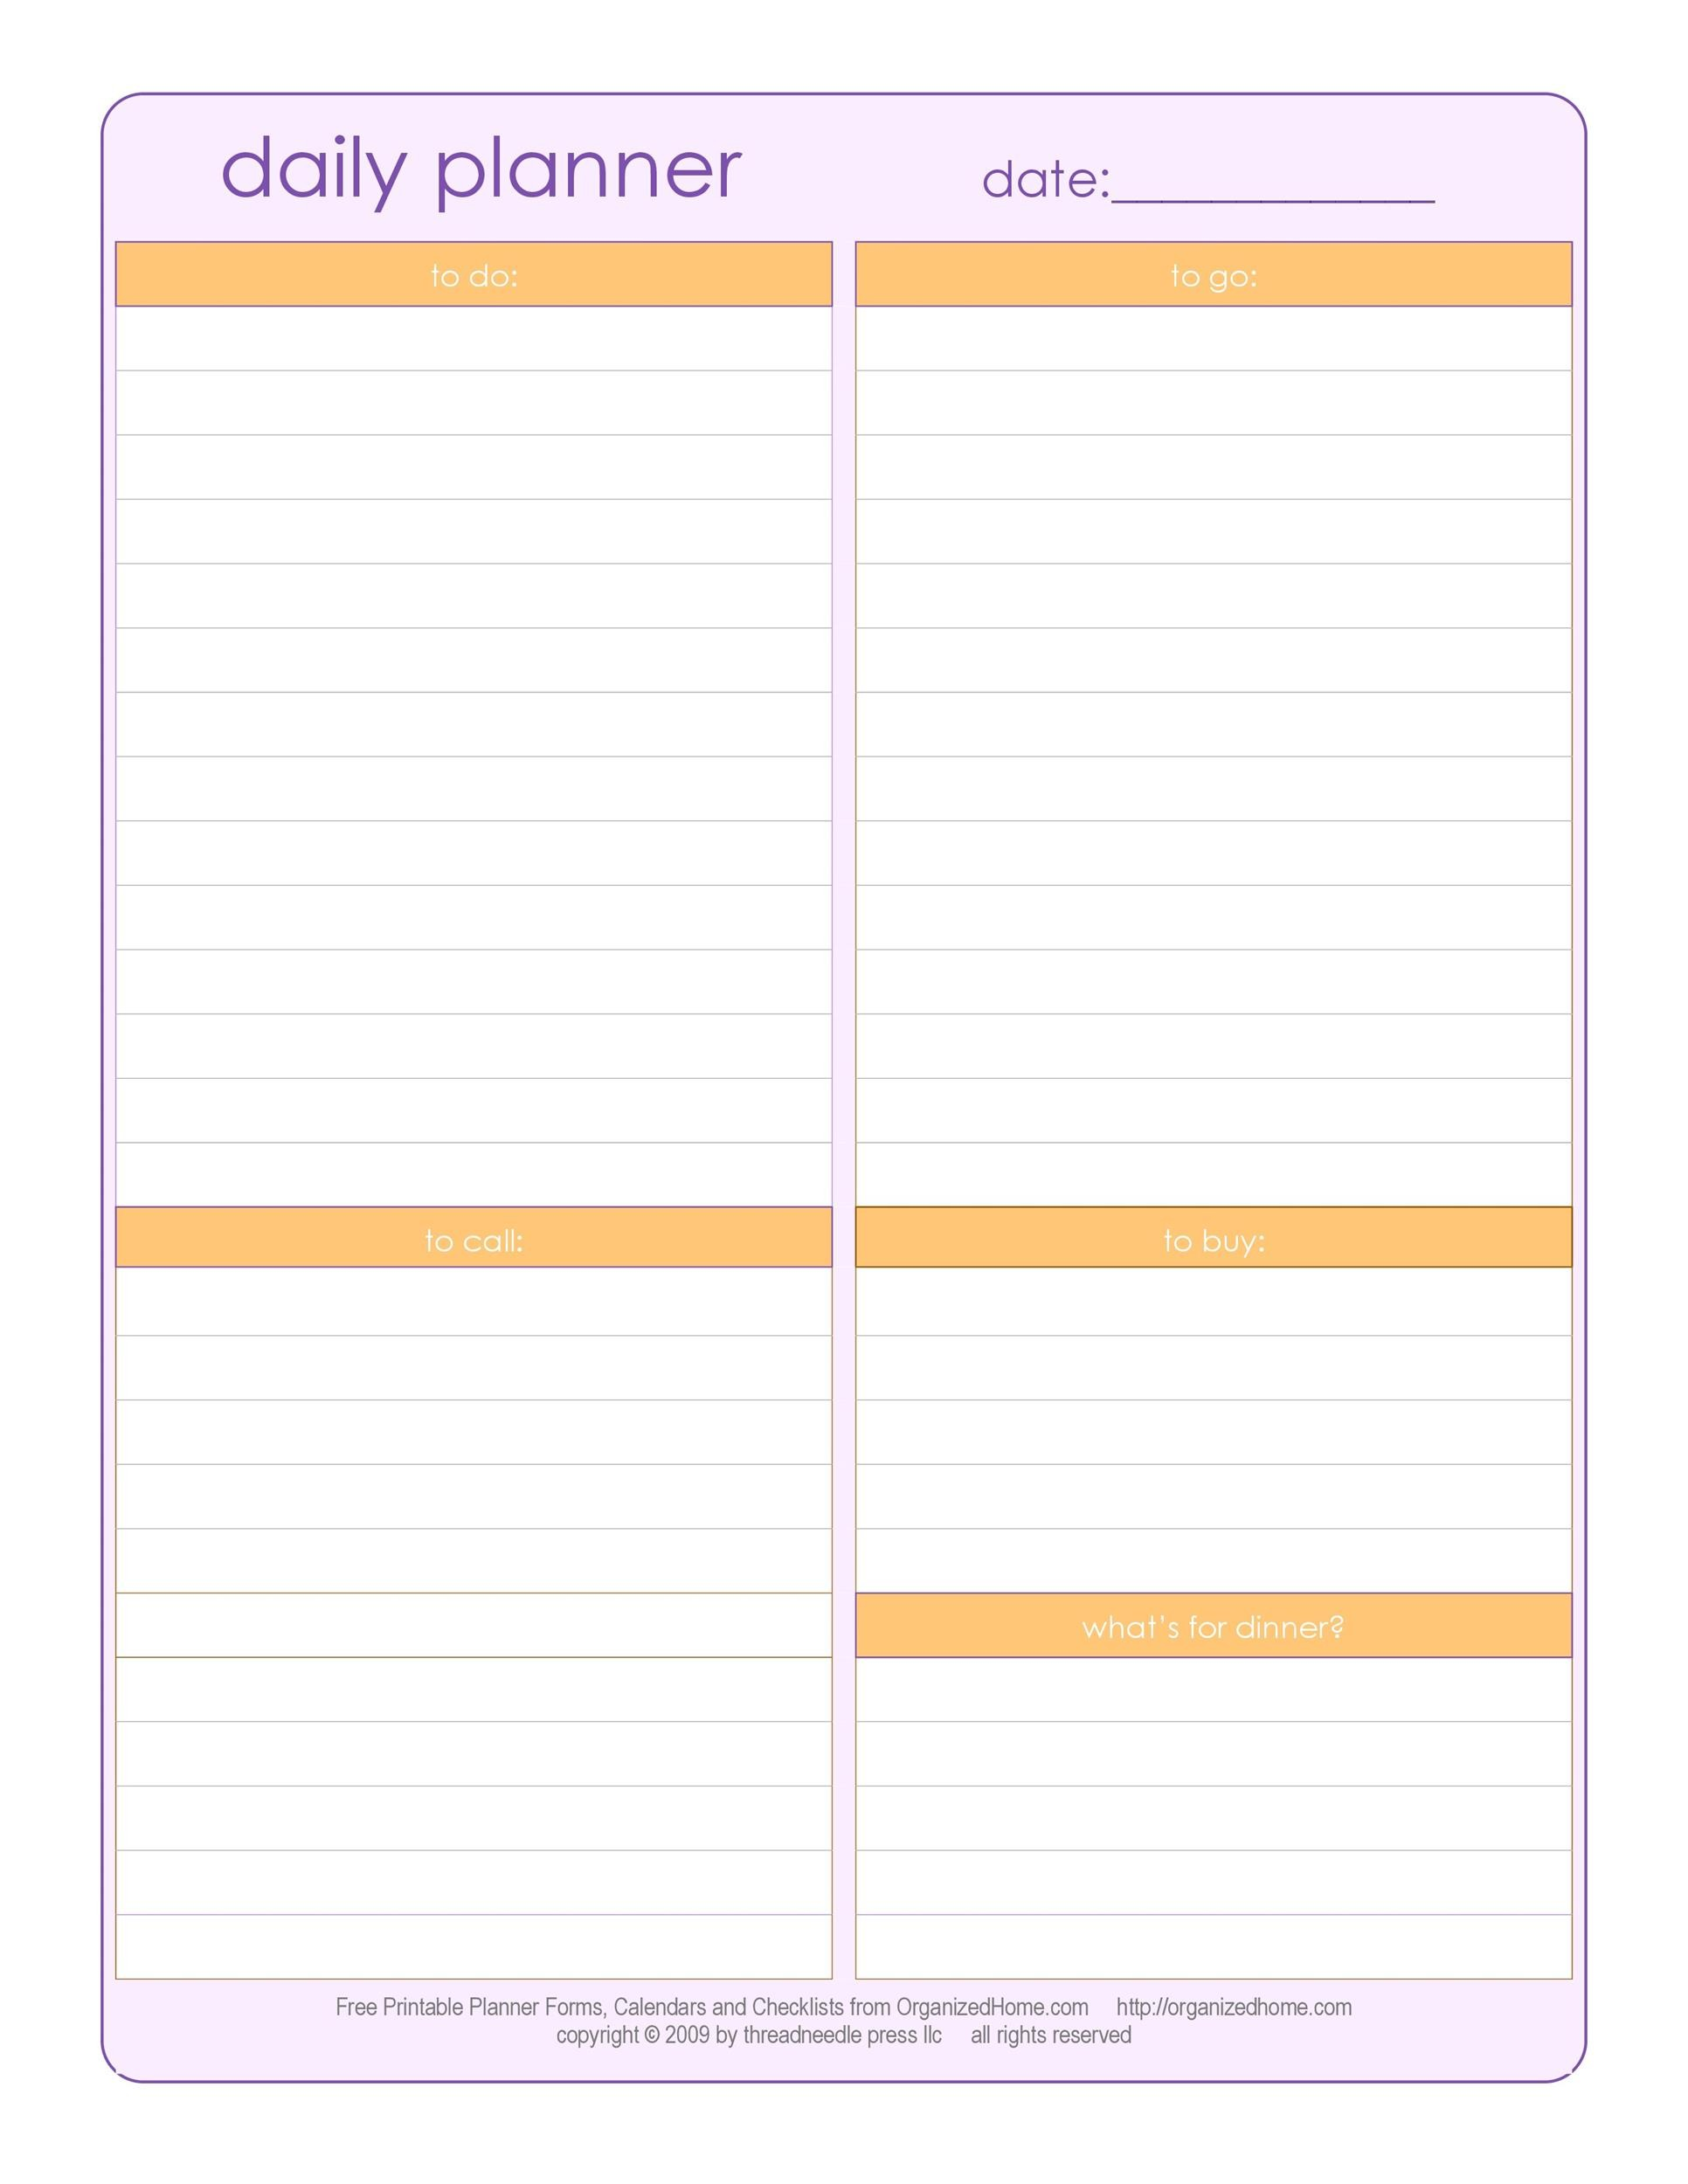 photo regarding Free Weekly Planner Printables known as 40+ Printable Everyday Planner Templates (Totally free) ᐅ Template Lab